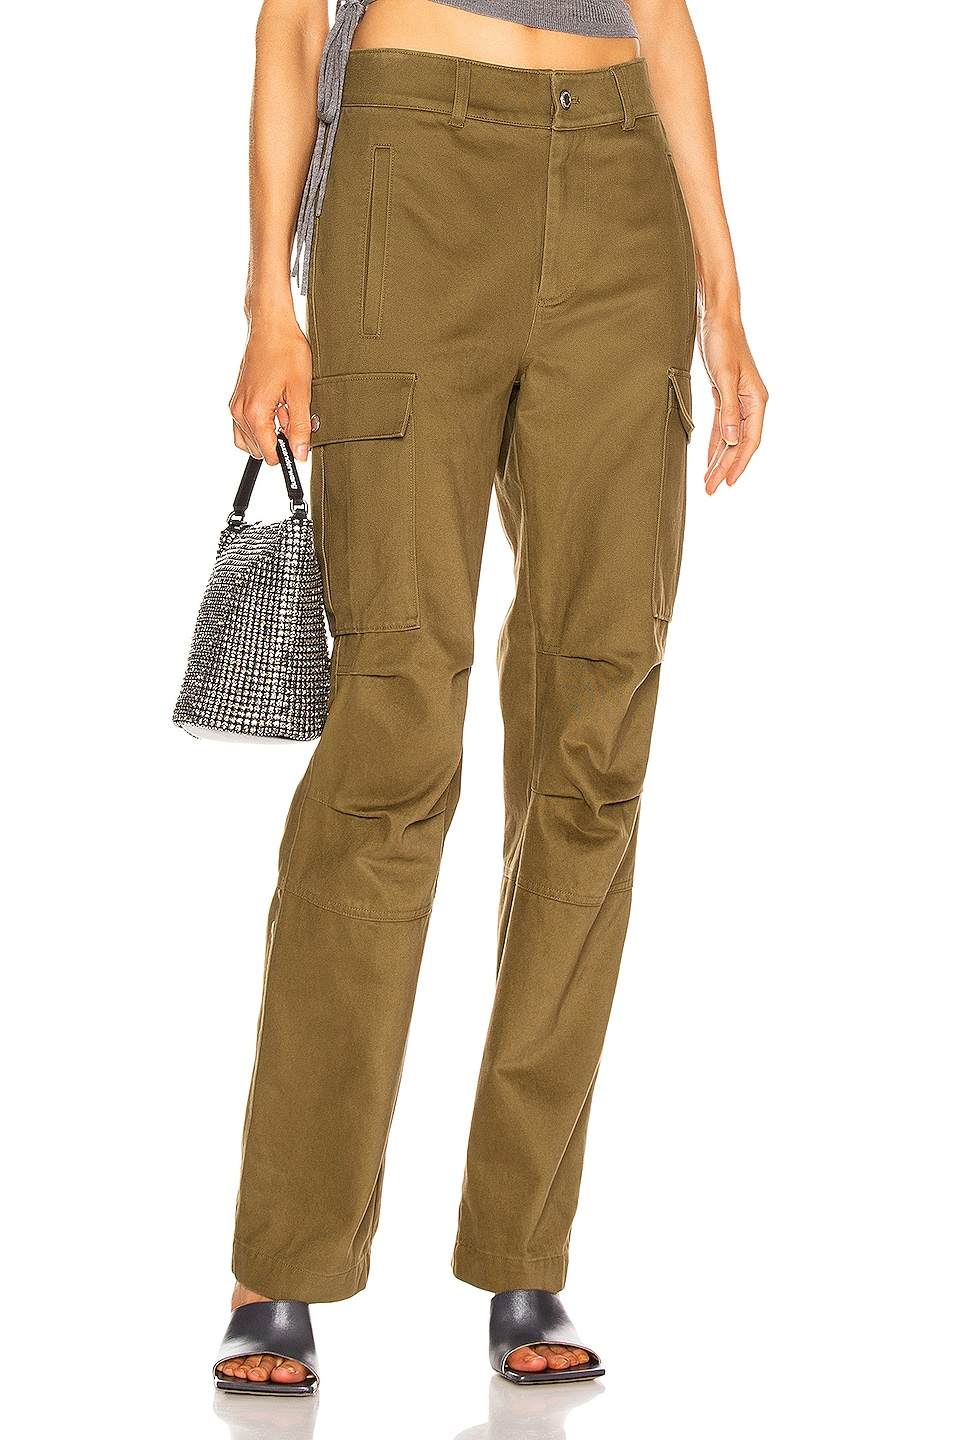 Image 1 of T by Alexander Wang Twill Cargo Pant in Olive